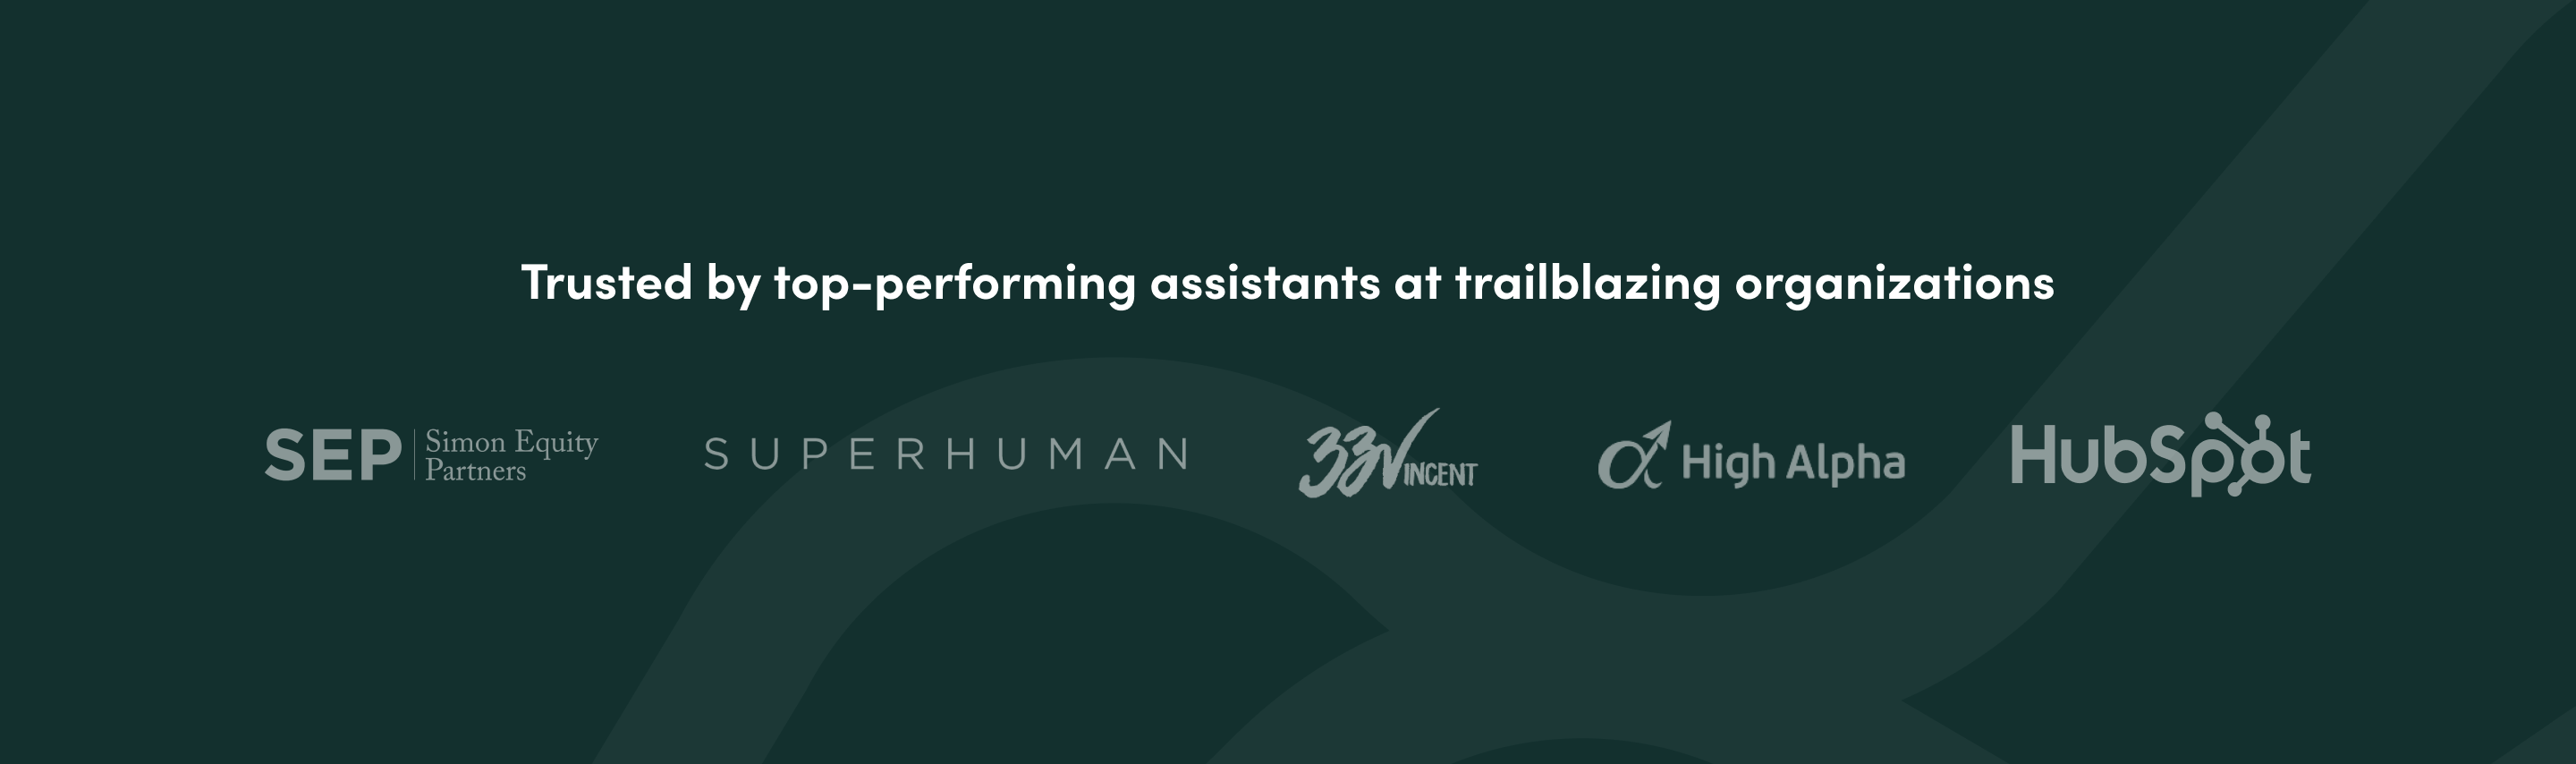 Trusted by top-performing assistants at trailblazing organizations